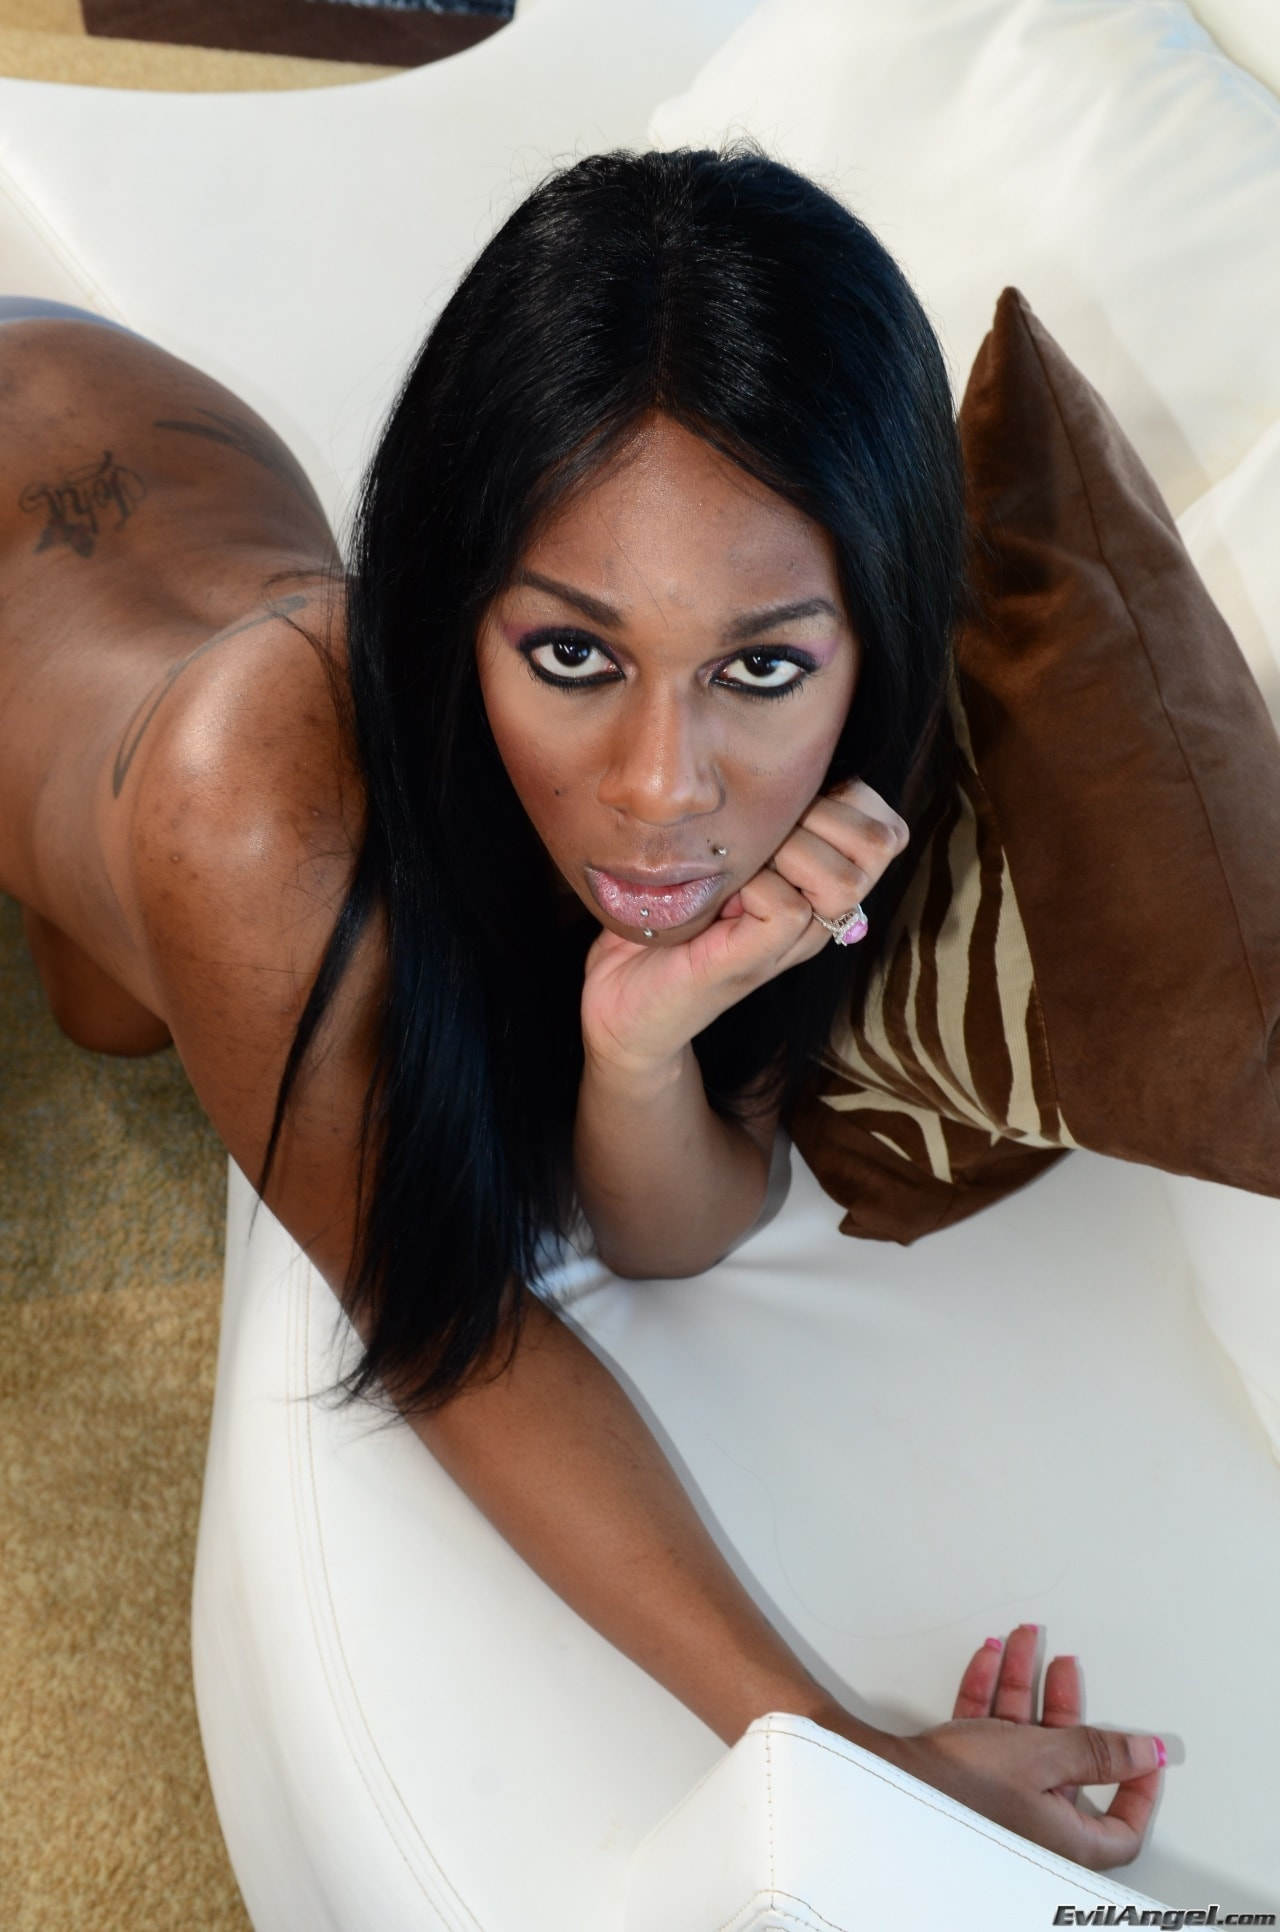 I Love Black Shemales 'Black Shemale Idol - The Auditions 02' starring Paris Pirelli (Photo 80)